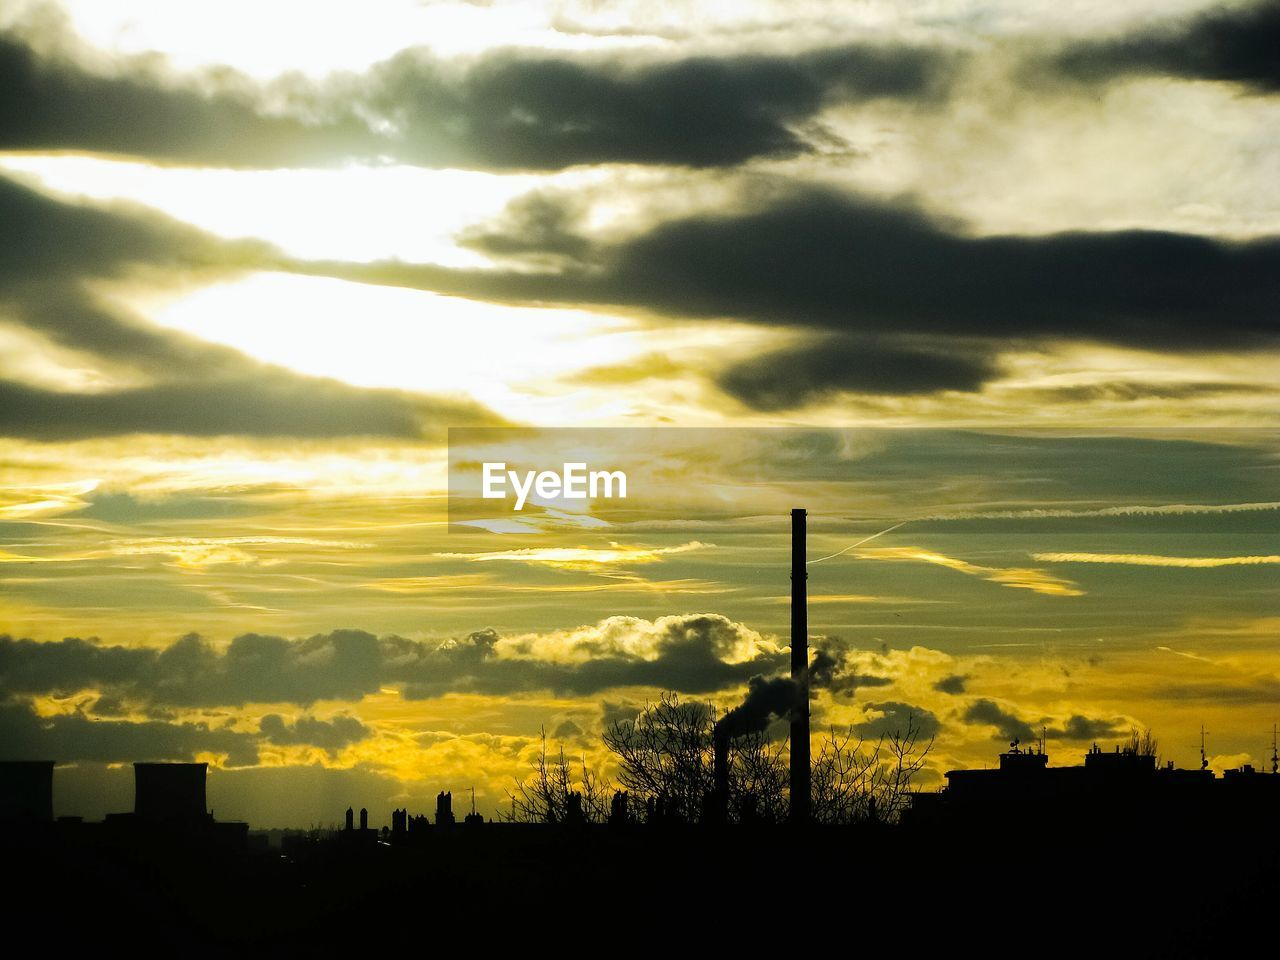 cloud - sky, sky, sunset, silhouette, architecture, built structure, building exterior, no people, smoke stack, nature, factory, industry, beauty in nature, orange color, outdoors, building, city, dramatic sky, environmental issues, chimney, pollution, air pollution